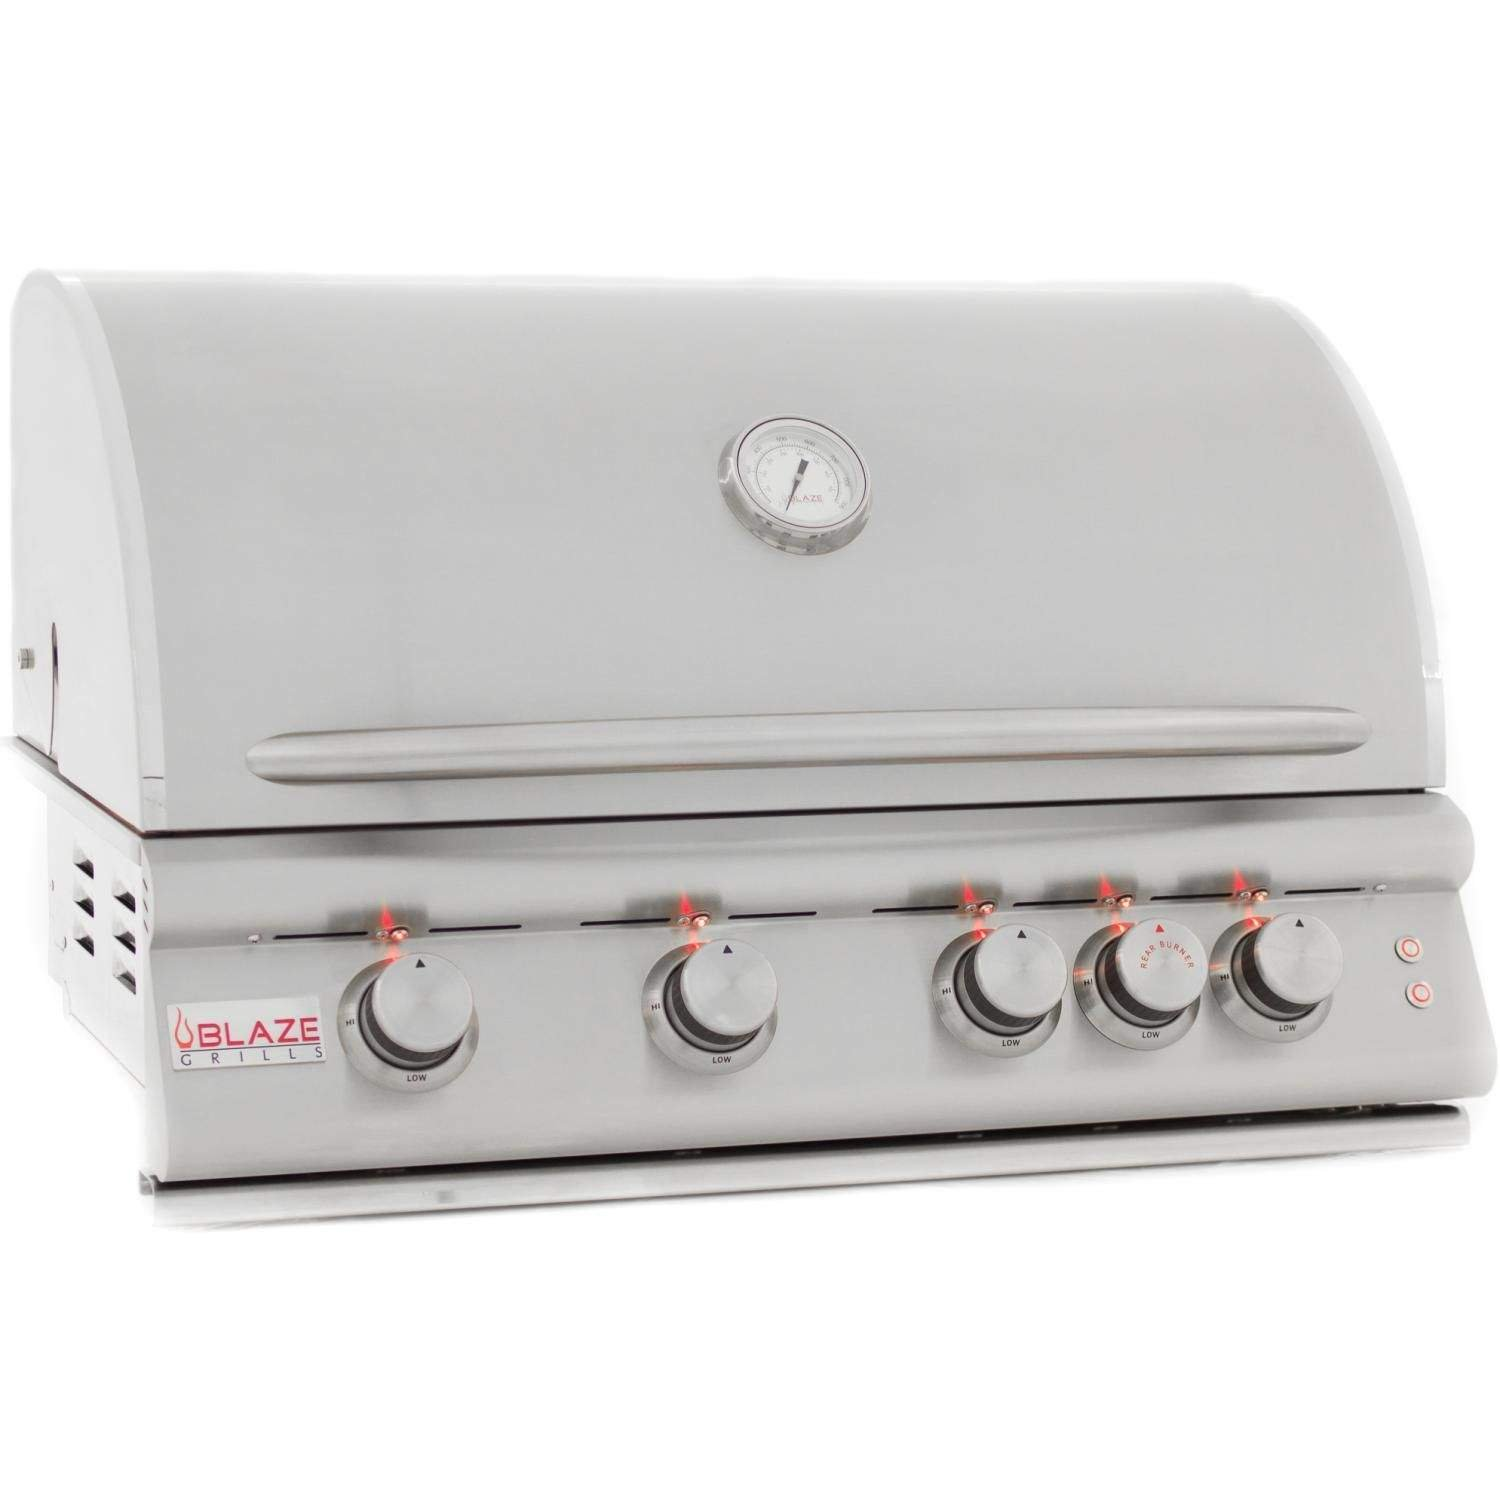 Blaze 32-inch Grill with Lights (BLZ-4LTE-LP), Built-In, Propane Gas